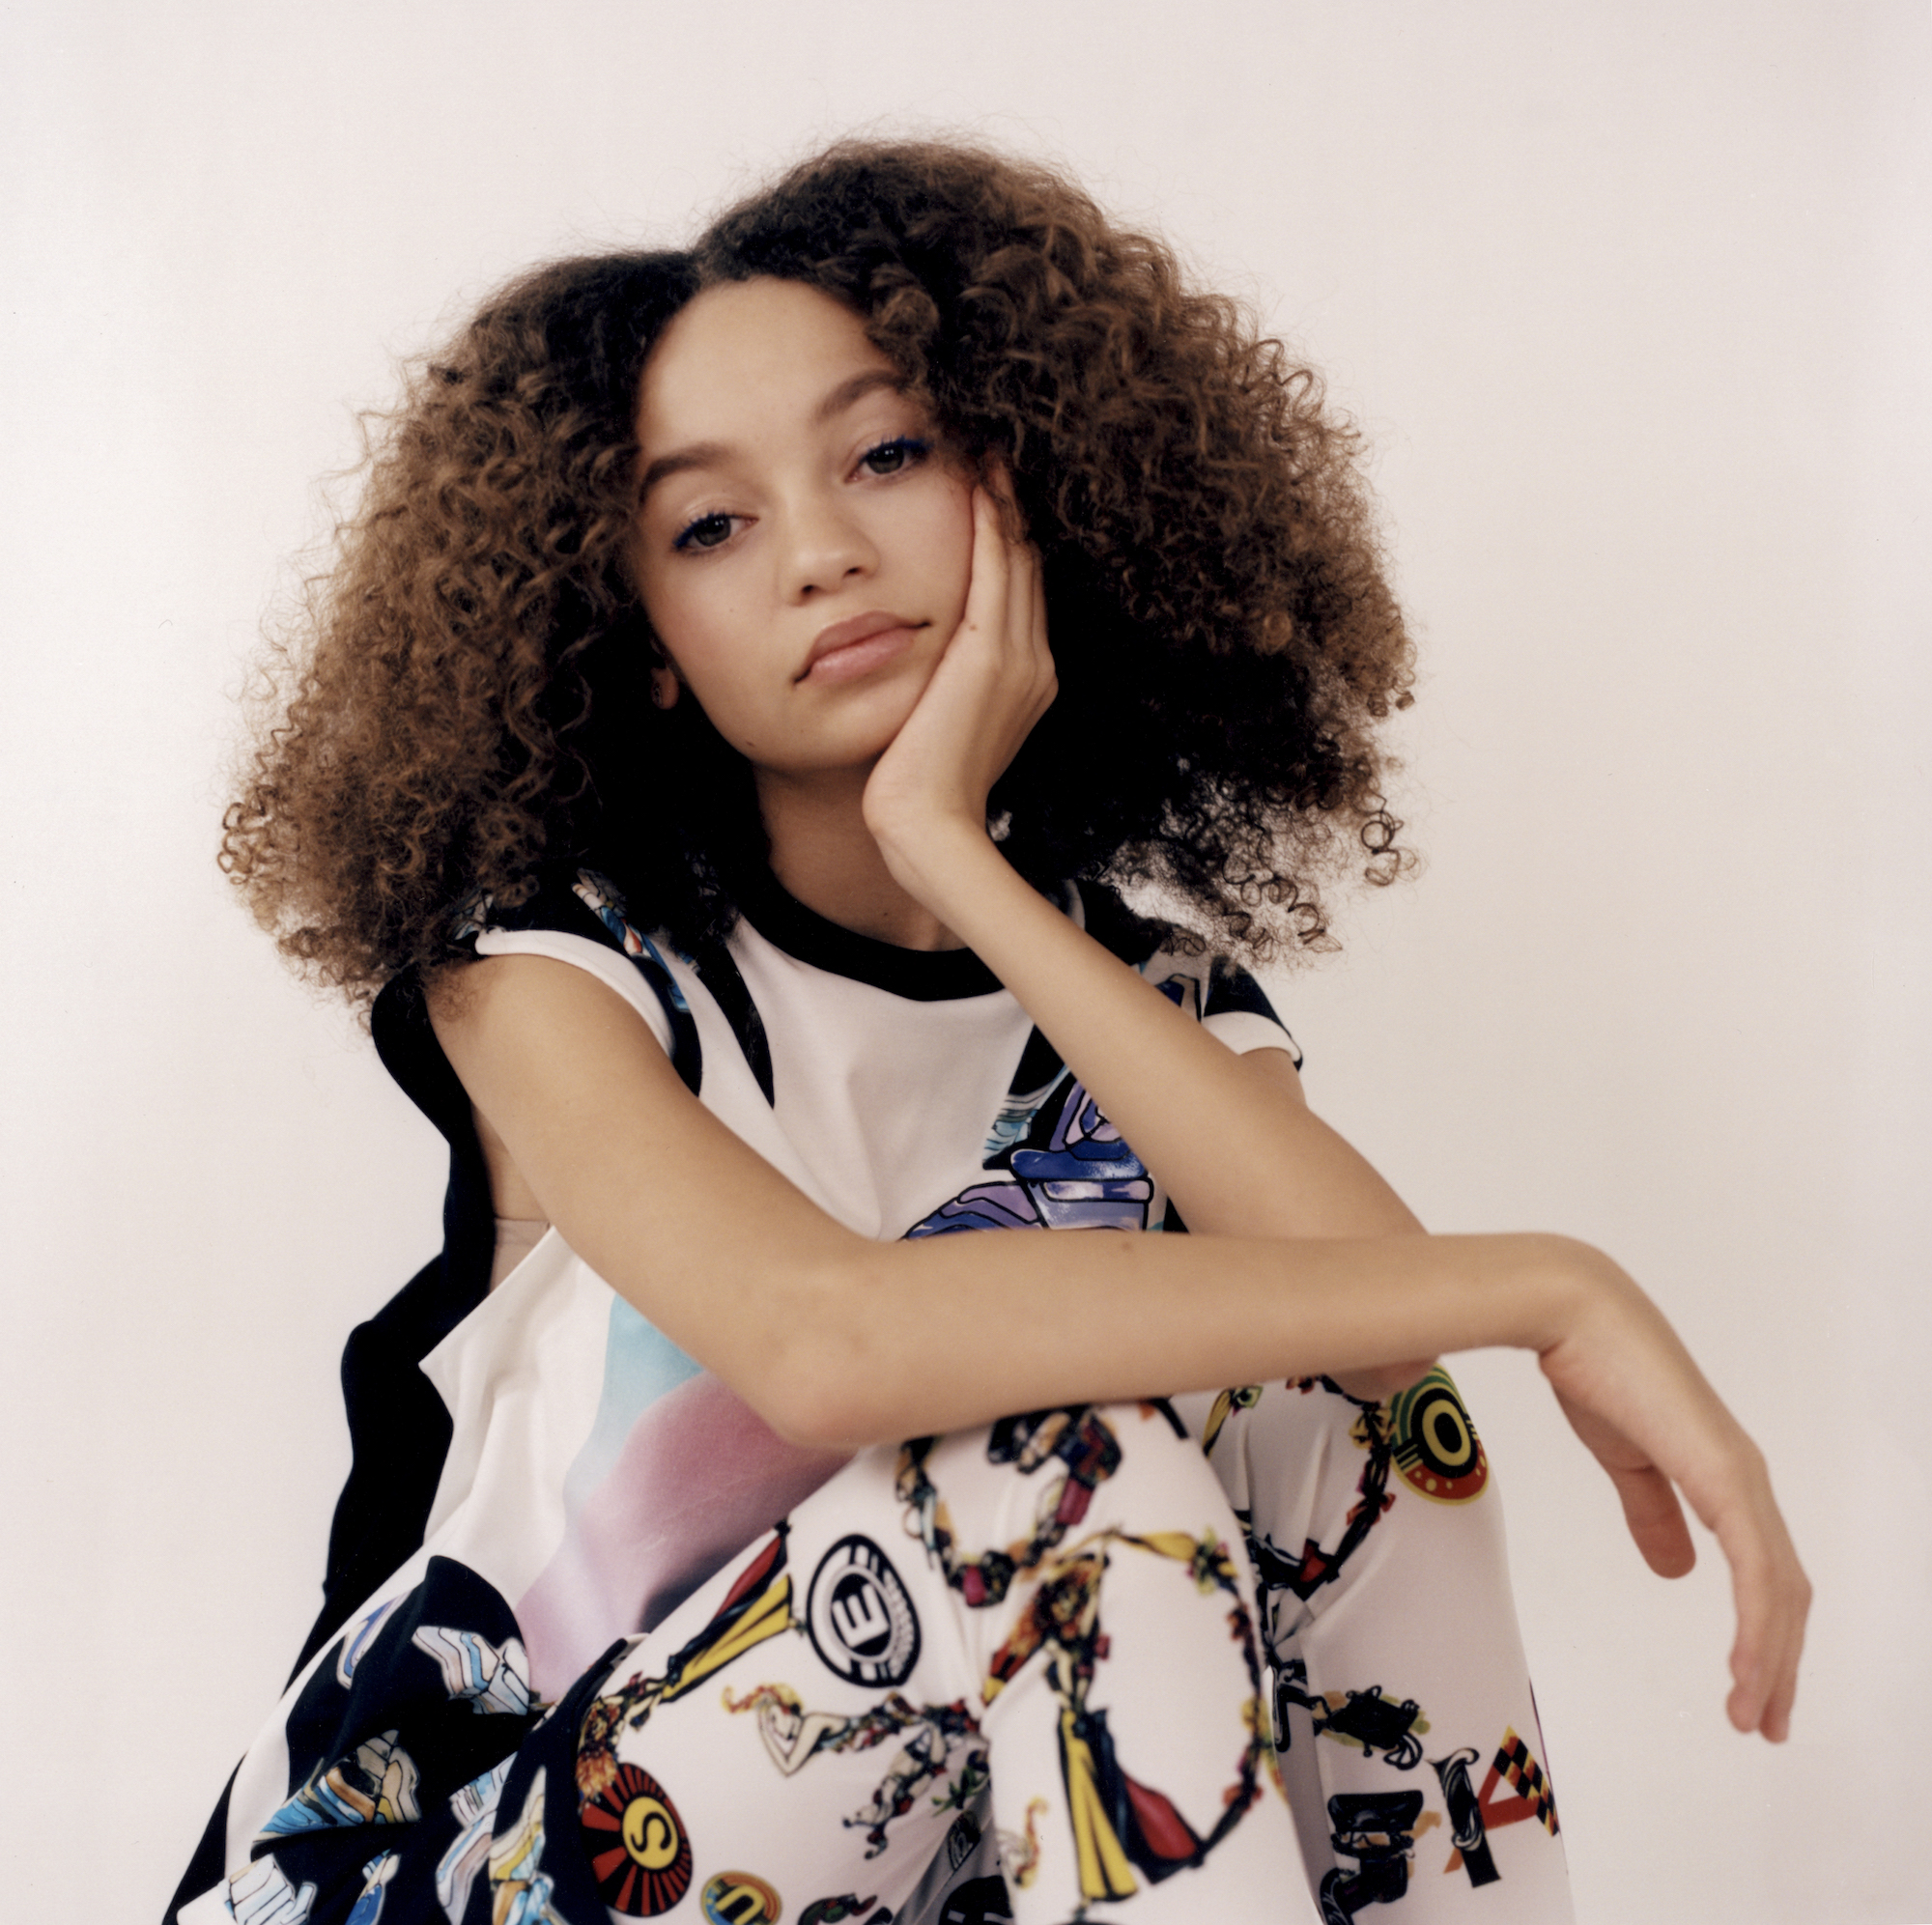 Thandie Newton's daughter Nico Parker, star of Dumbo in Wonderland's Spring 19 issue closeup